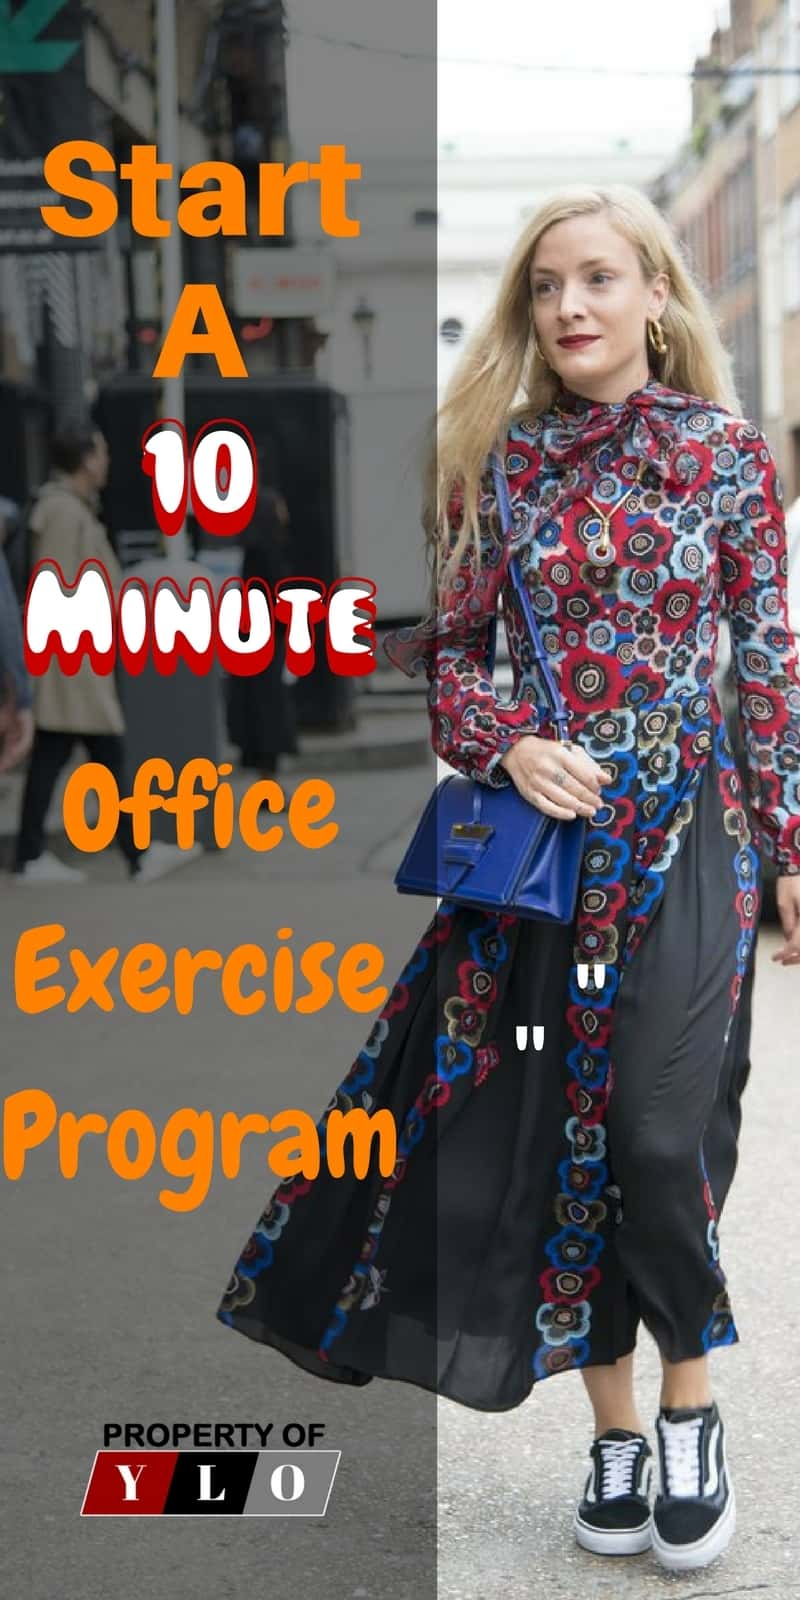 I came home after 10 hours of sitting at my desk and I realized a few things. I needed an office #exercise program! #workout | Excercise | Excercise Motivation | Excercise For Beginners | Excercise for Women | workout | Fitness Motivation | Fitness for men | Fitness for women | weight loss | Lose Weight | Fat Burning | fat loss | lose fat | Quick weight loss |